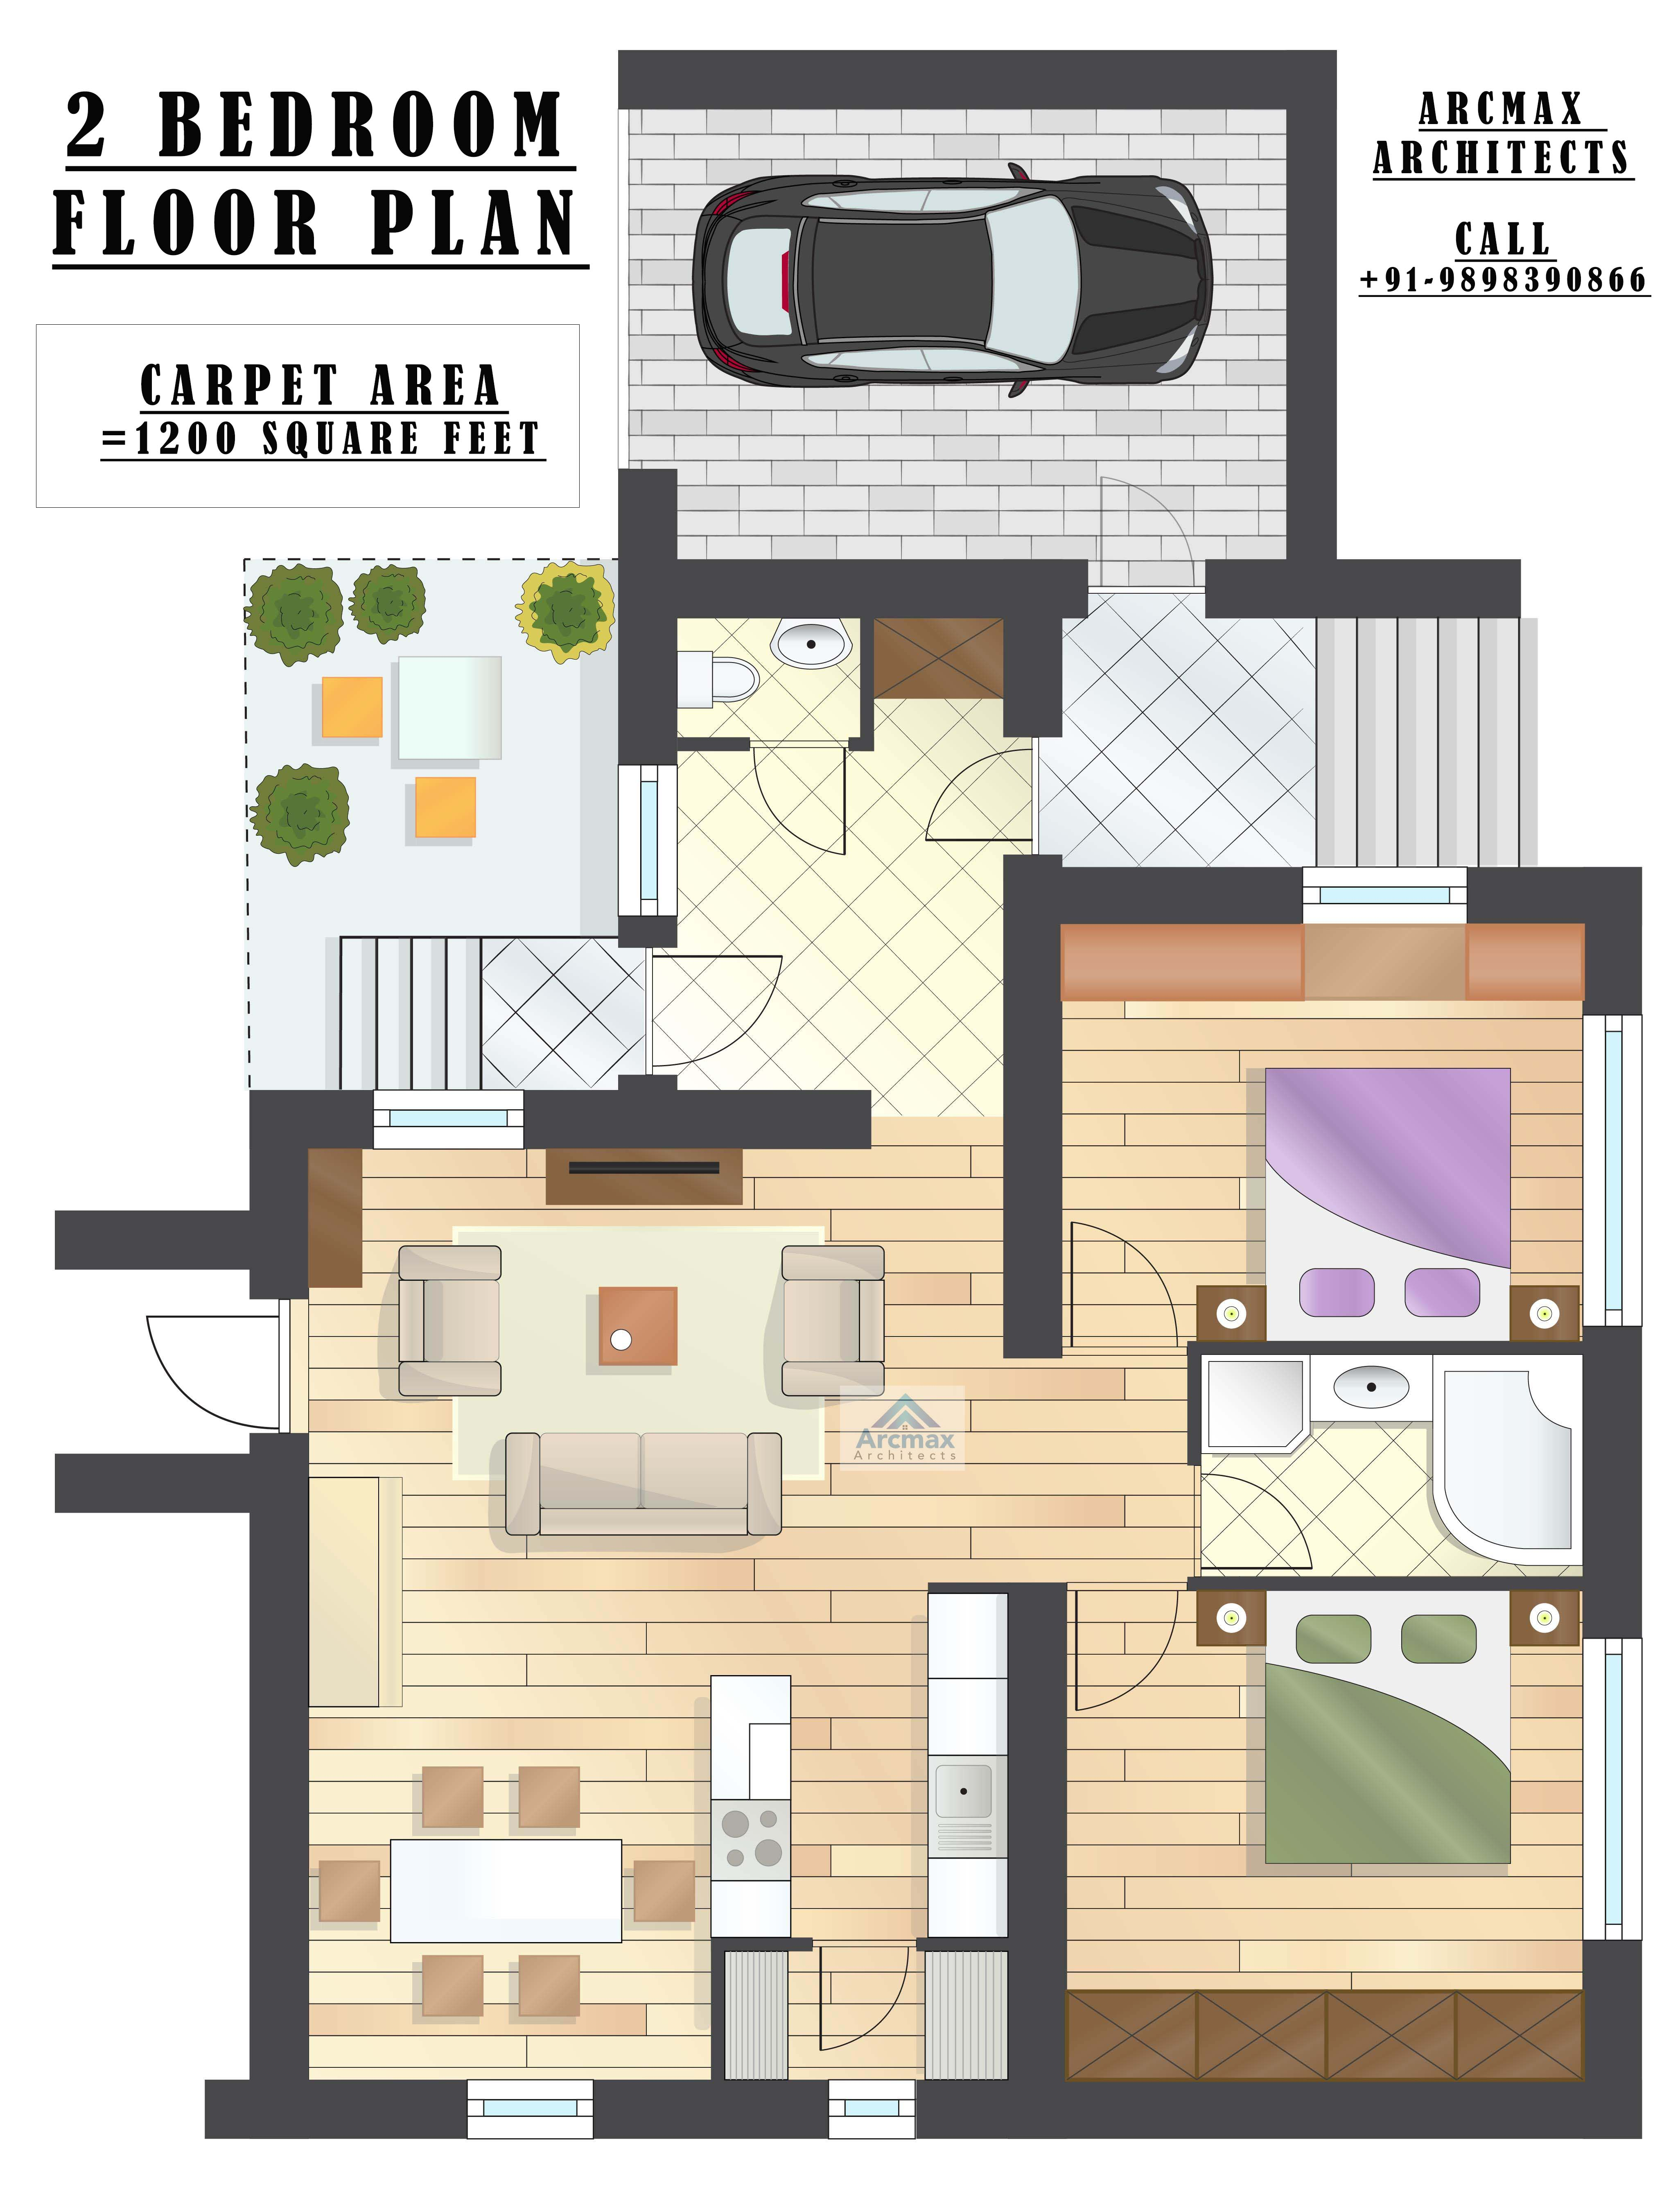 2 BEDROOM HOME PLANS AND FLOOR LAYOUT